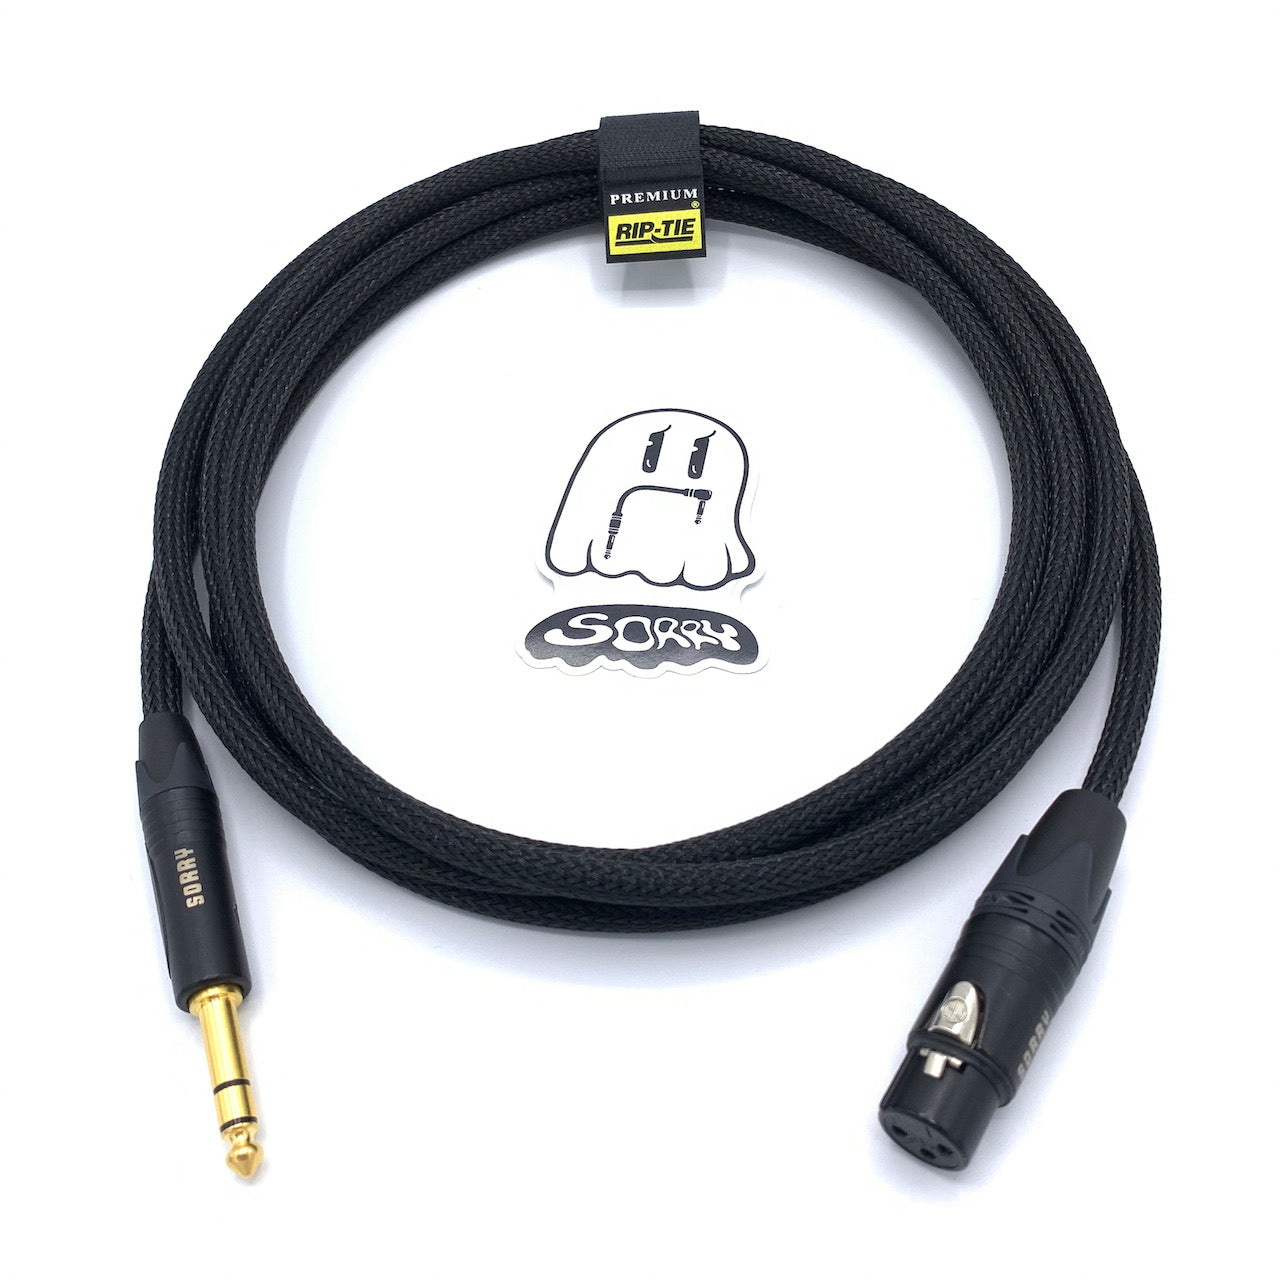 "SORRY XLR Female to 1/4"" TRS Male Cable - Black"